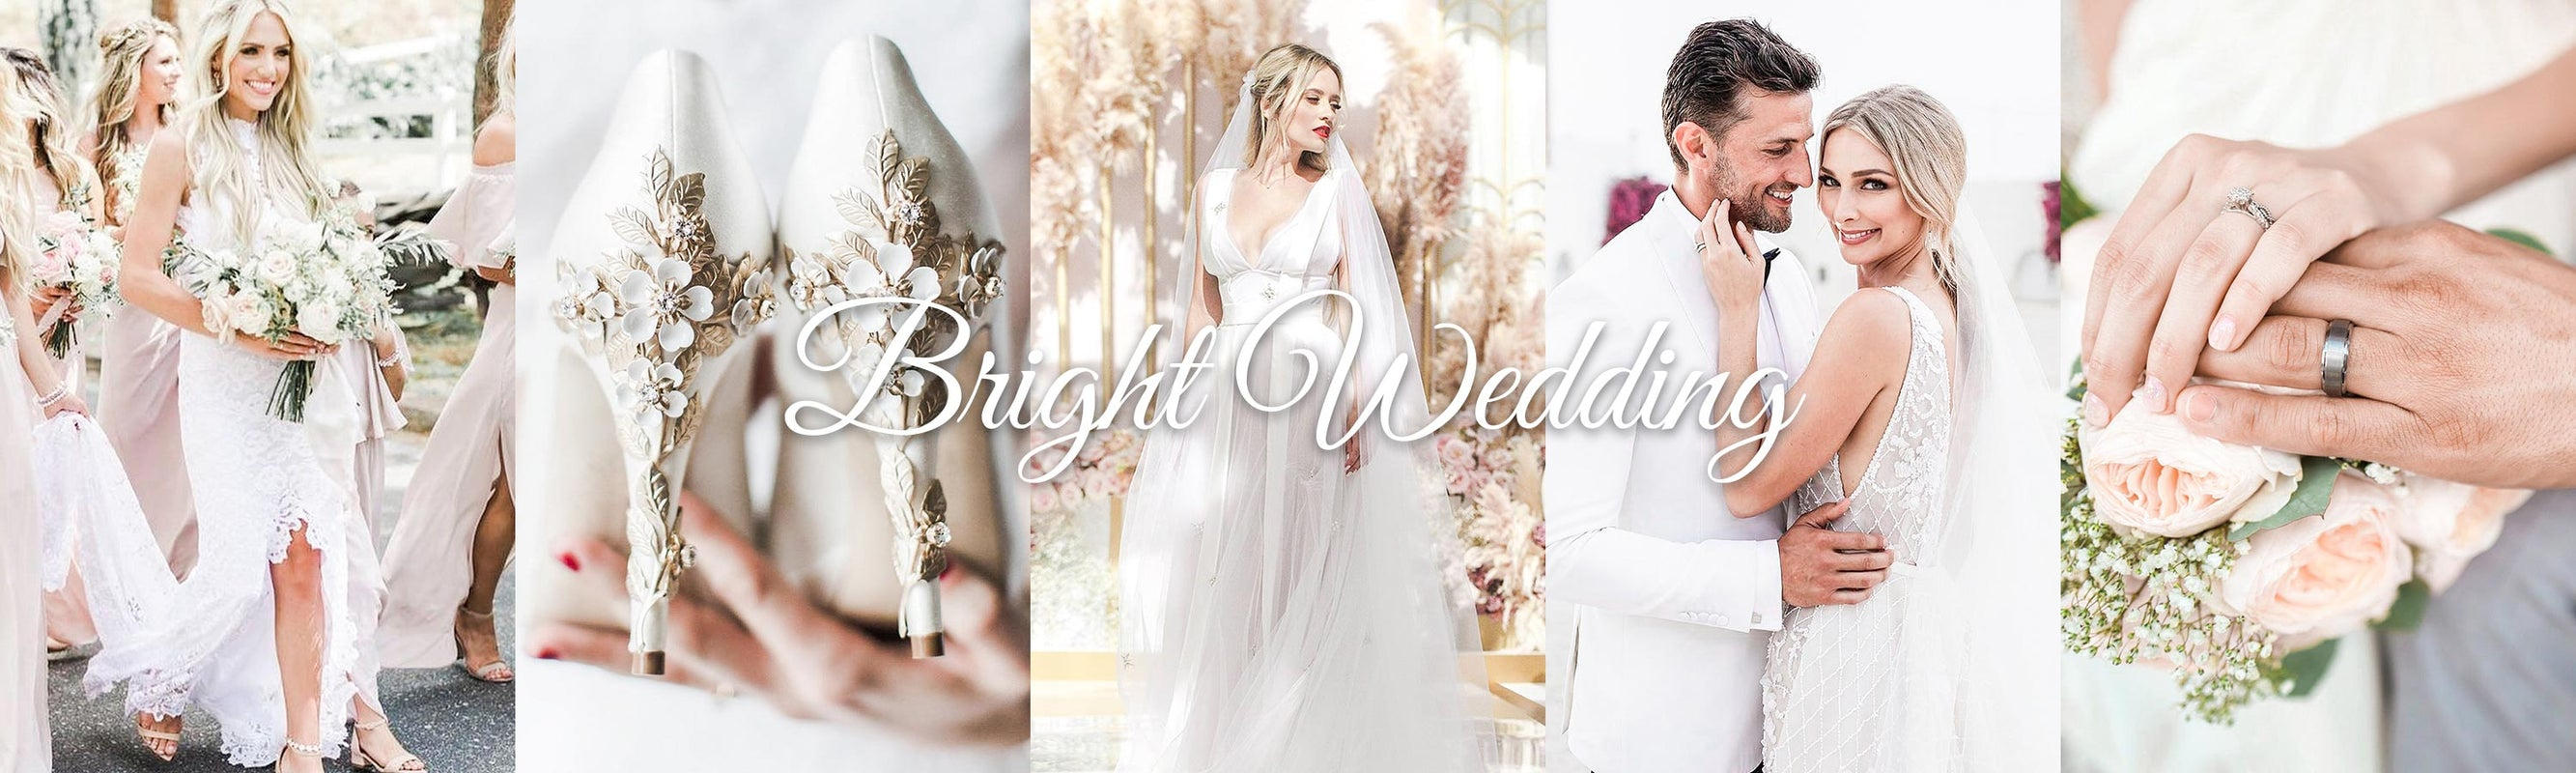 Bright Wedding Lightroom Presets For Mobile And Desktop